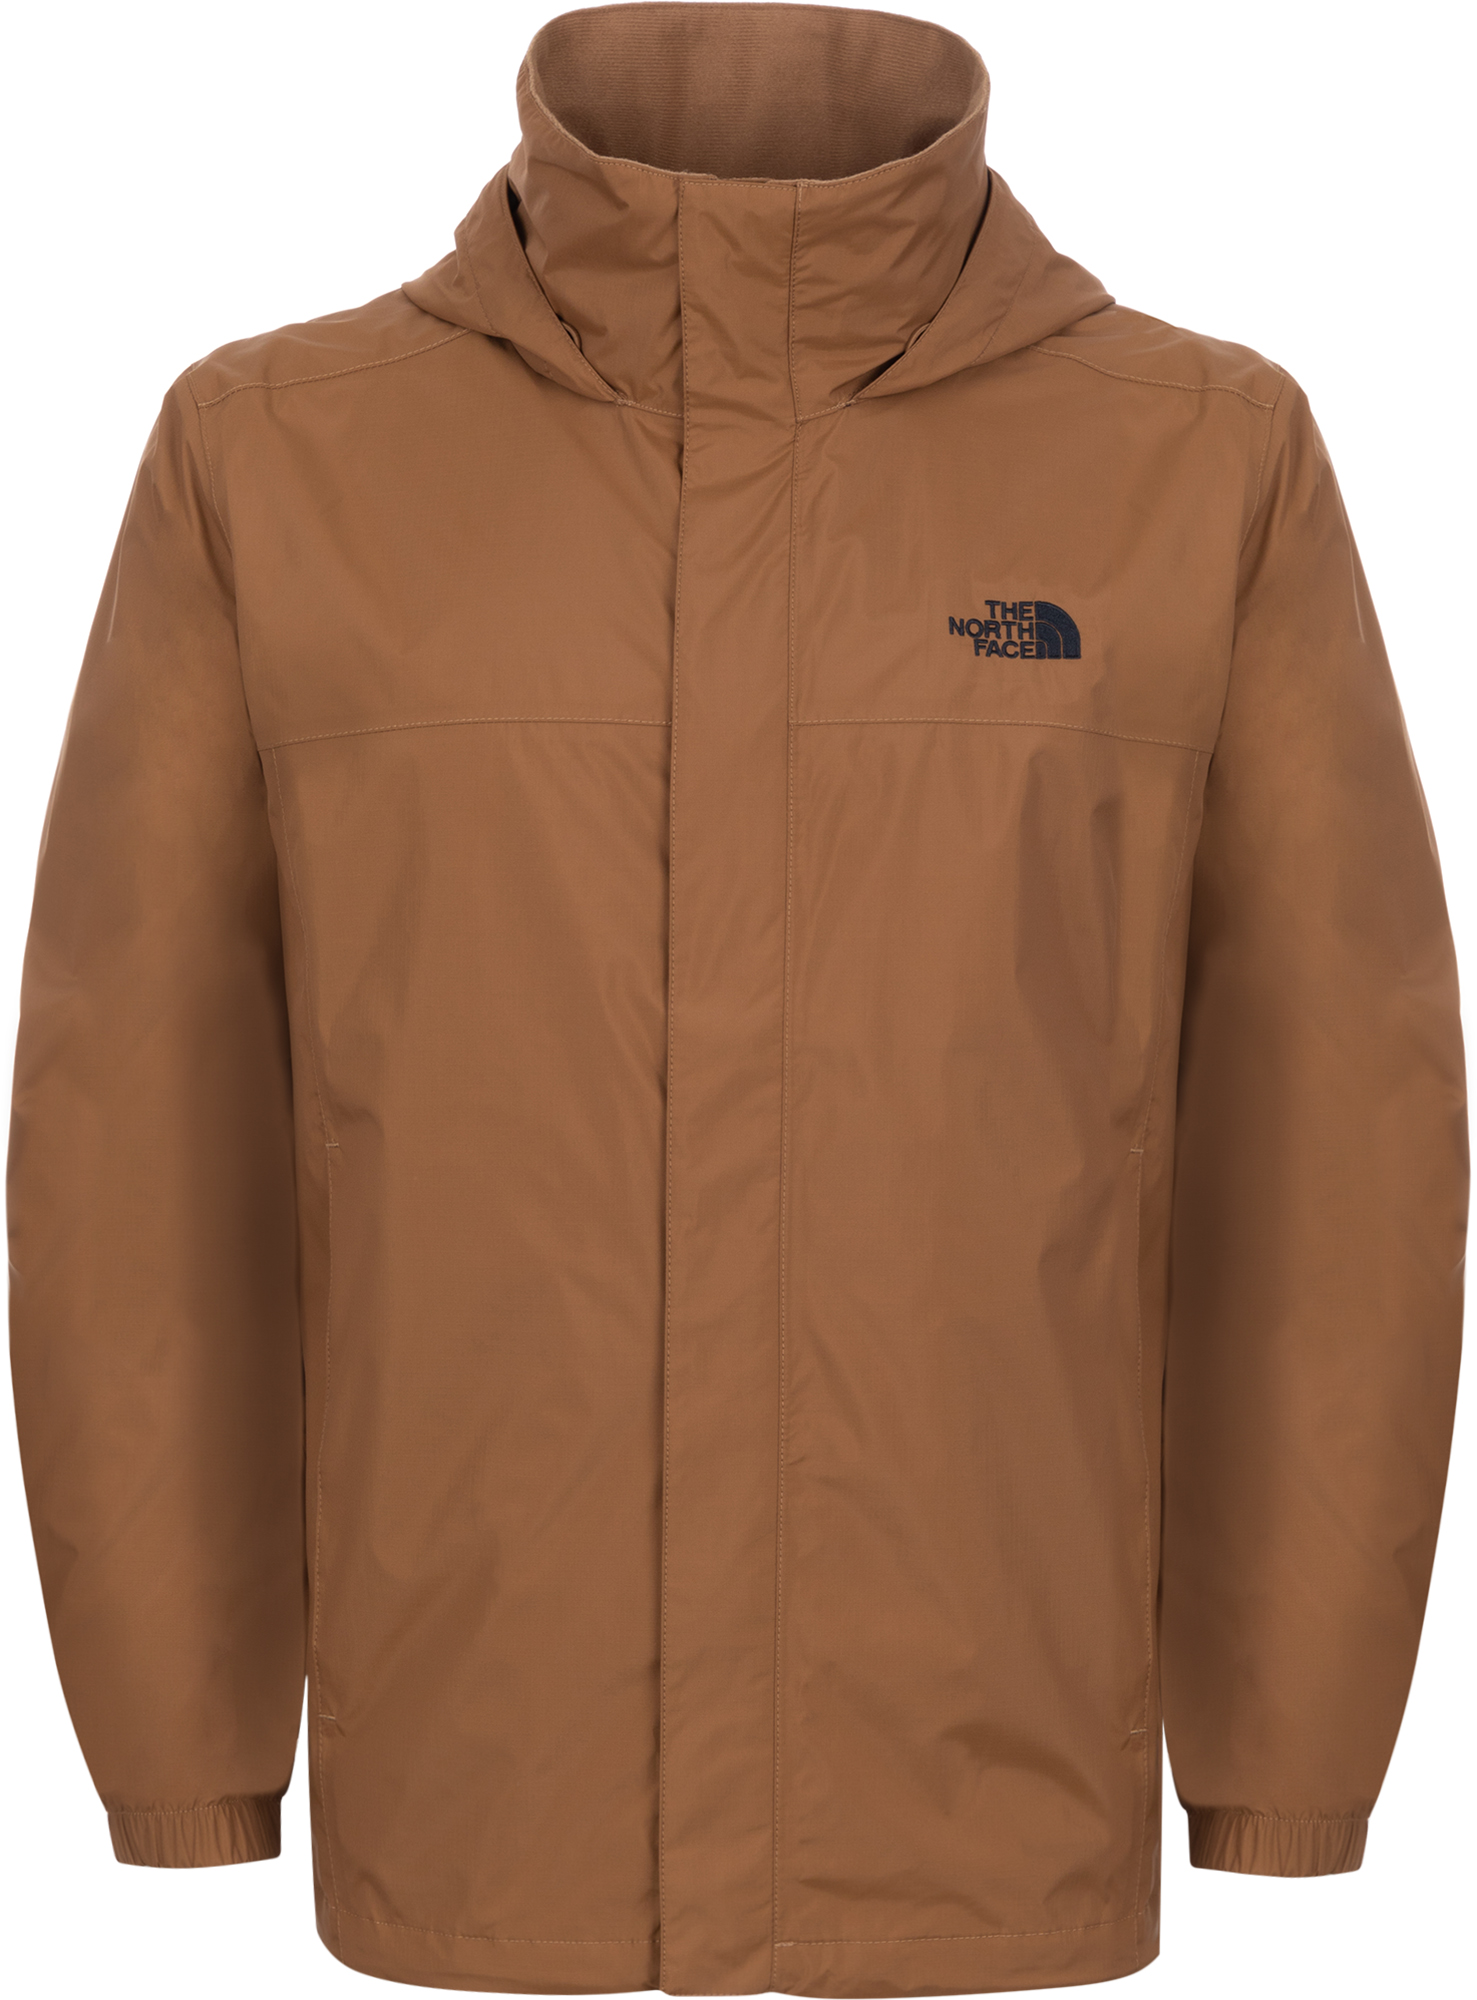 The North Face Ветровка мужская The North Face Resolve 2, размер 52